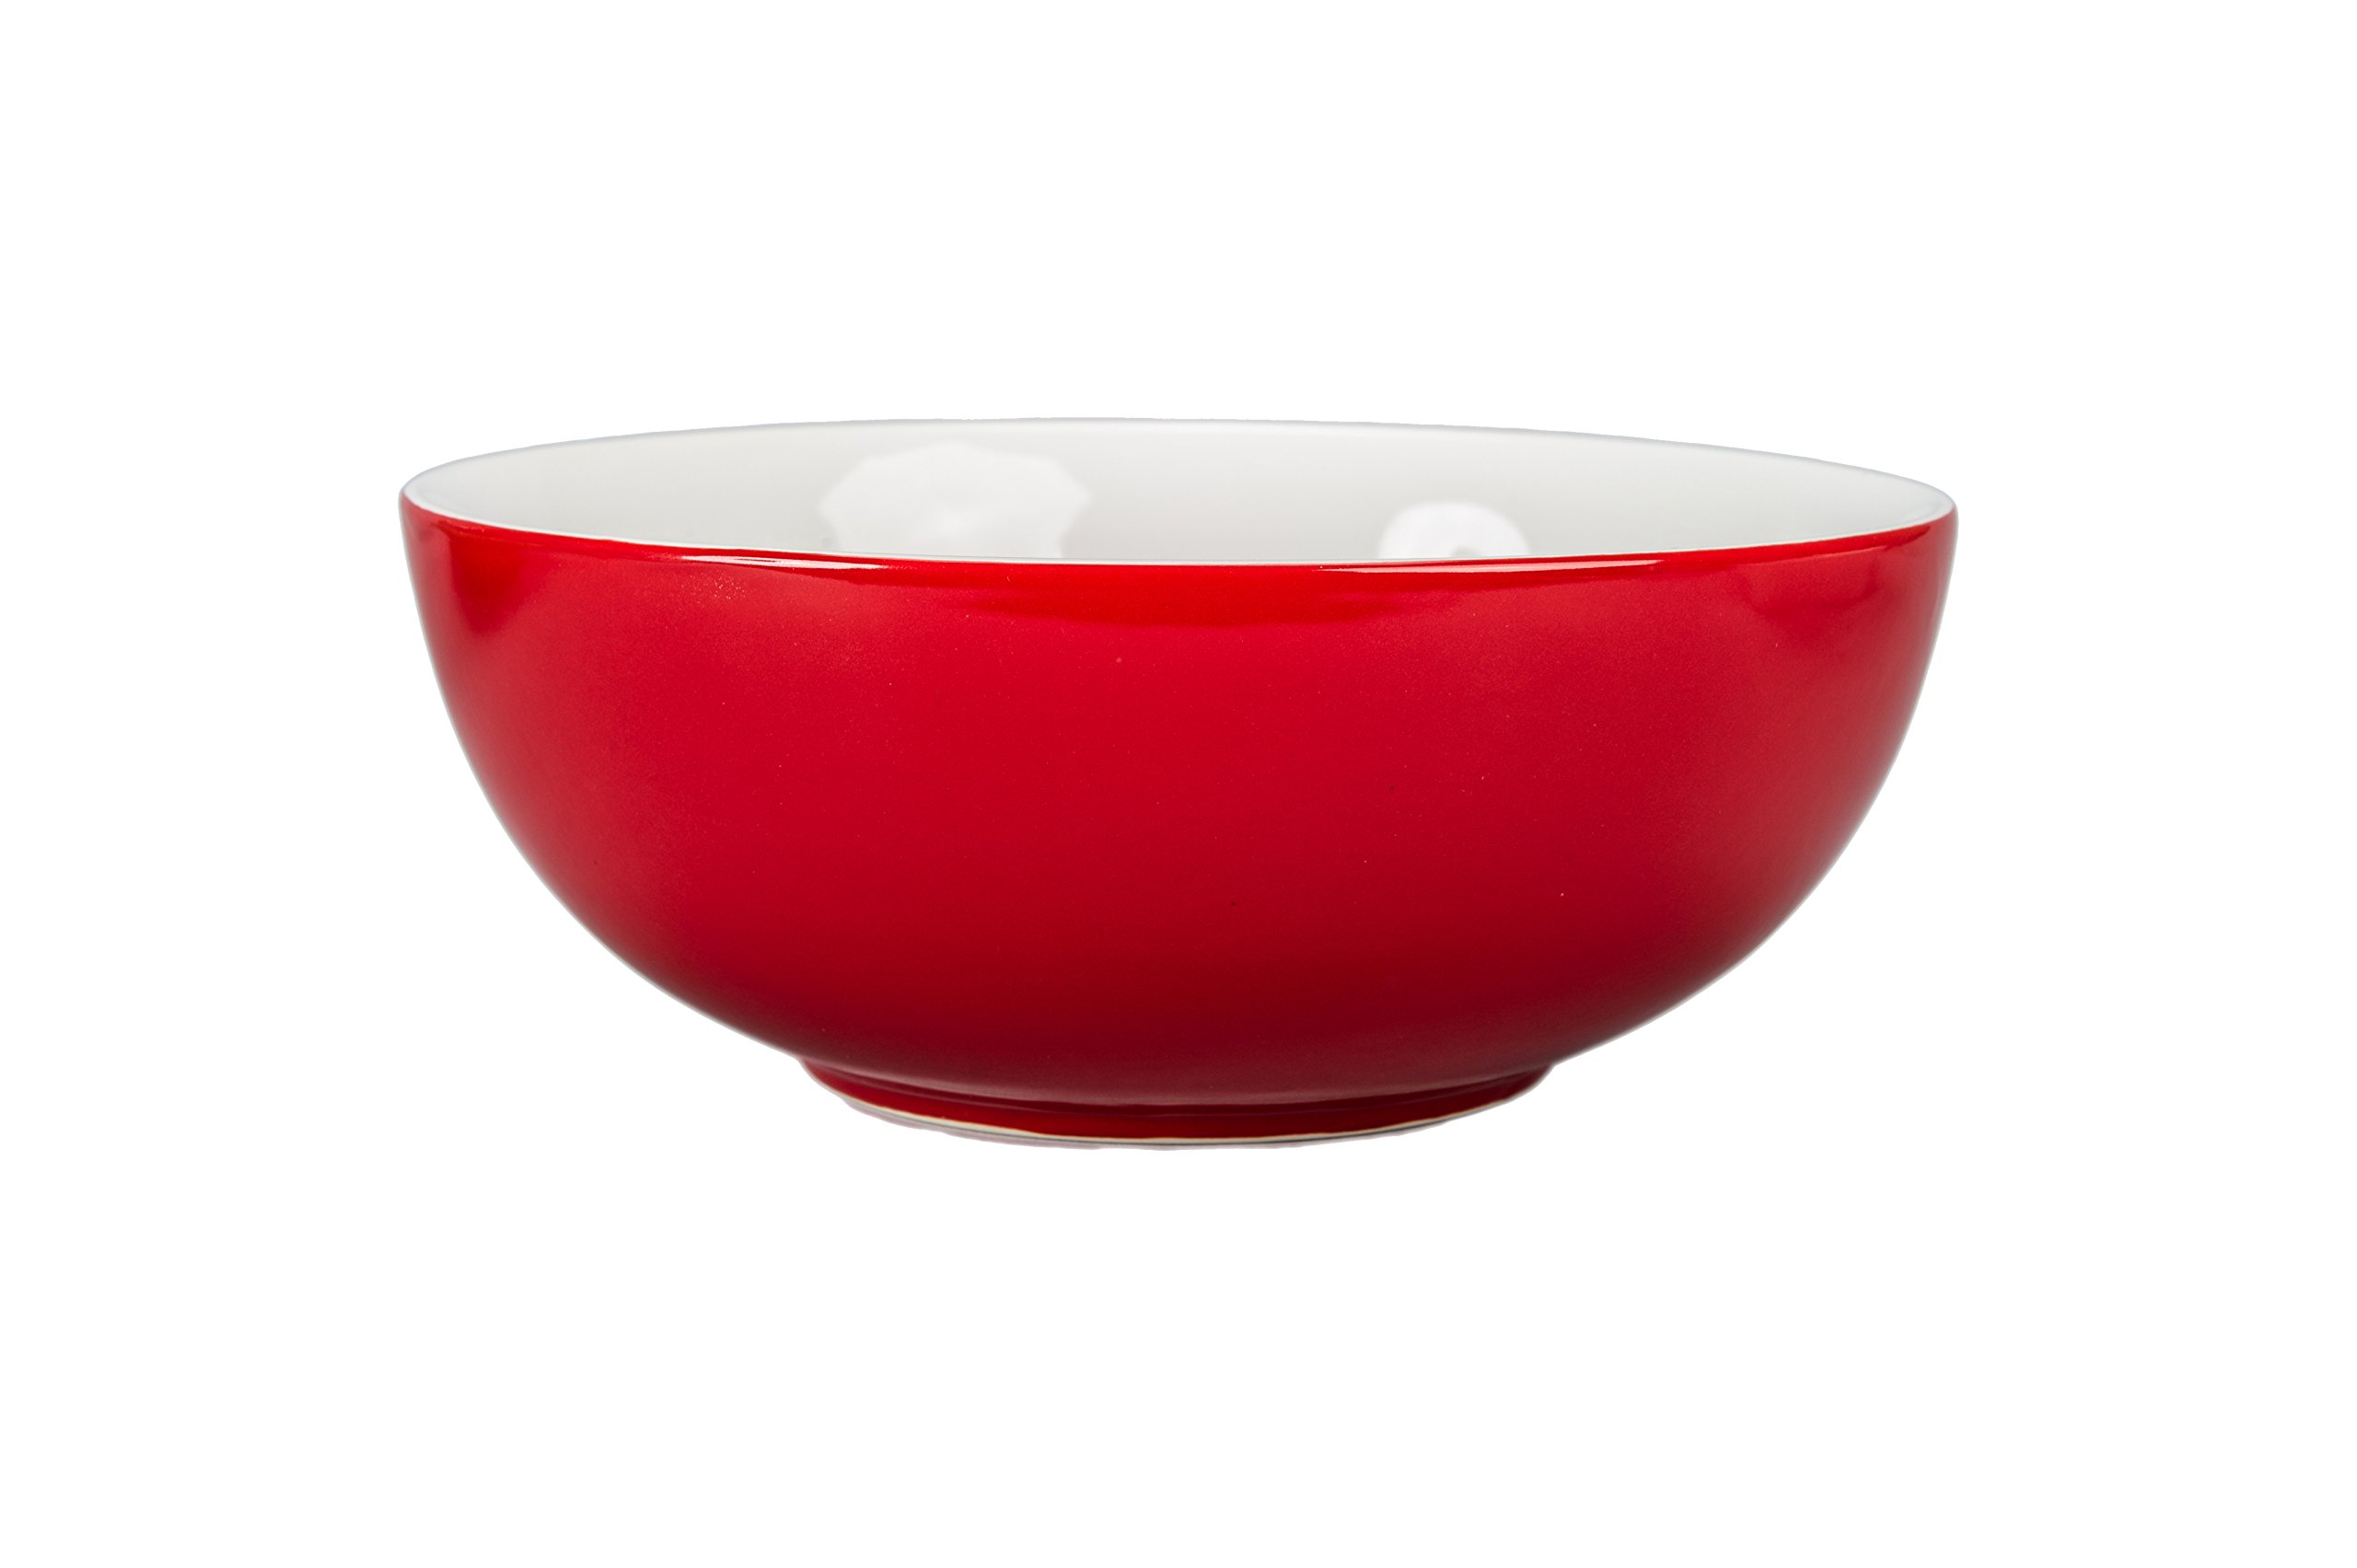 BIA Cordon Bleu Seasons 1.75-Quart Porcelain Serve Bowl, Spice Red/White